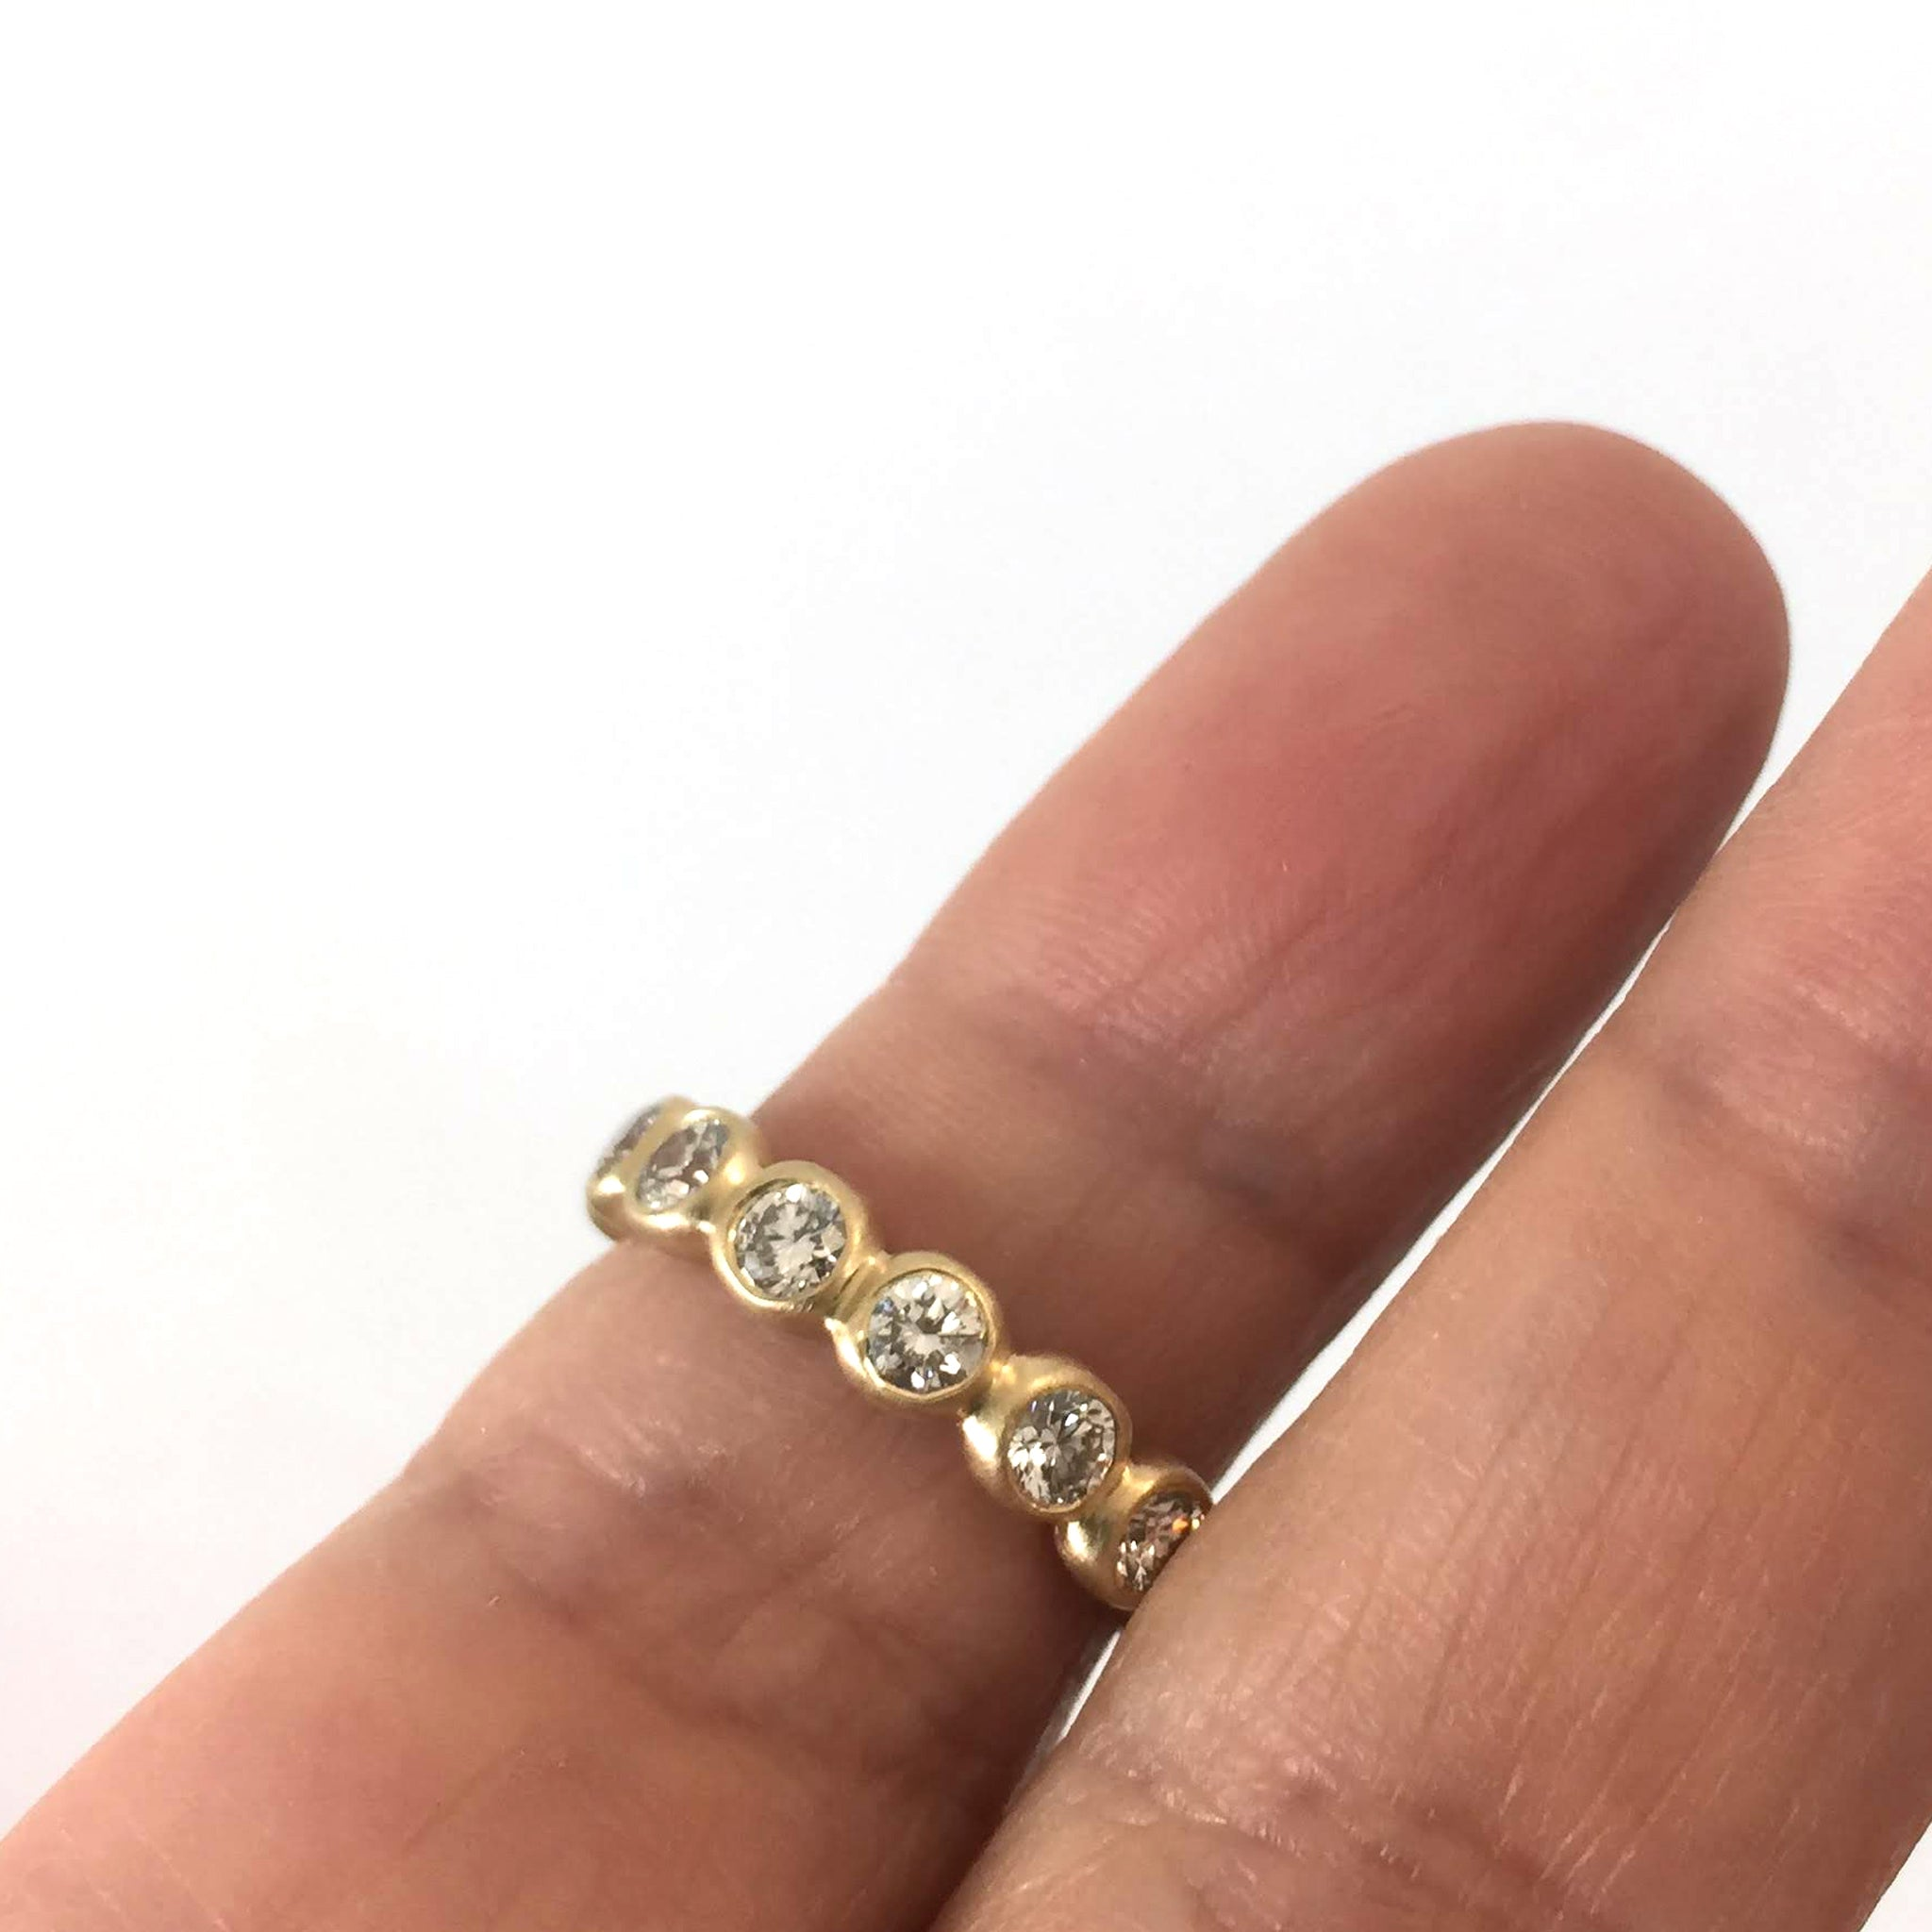 Porch Band with 3 mm diamonds